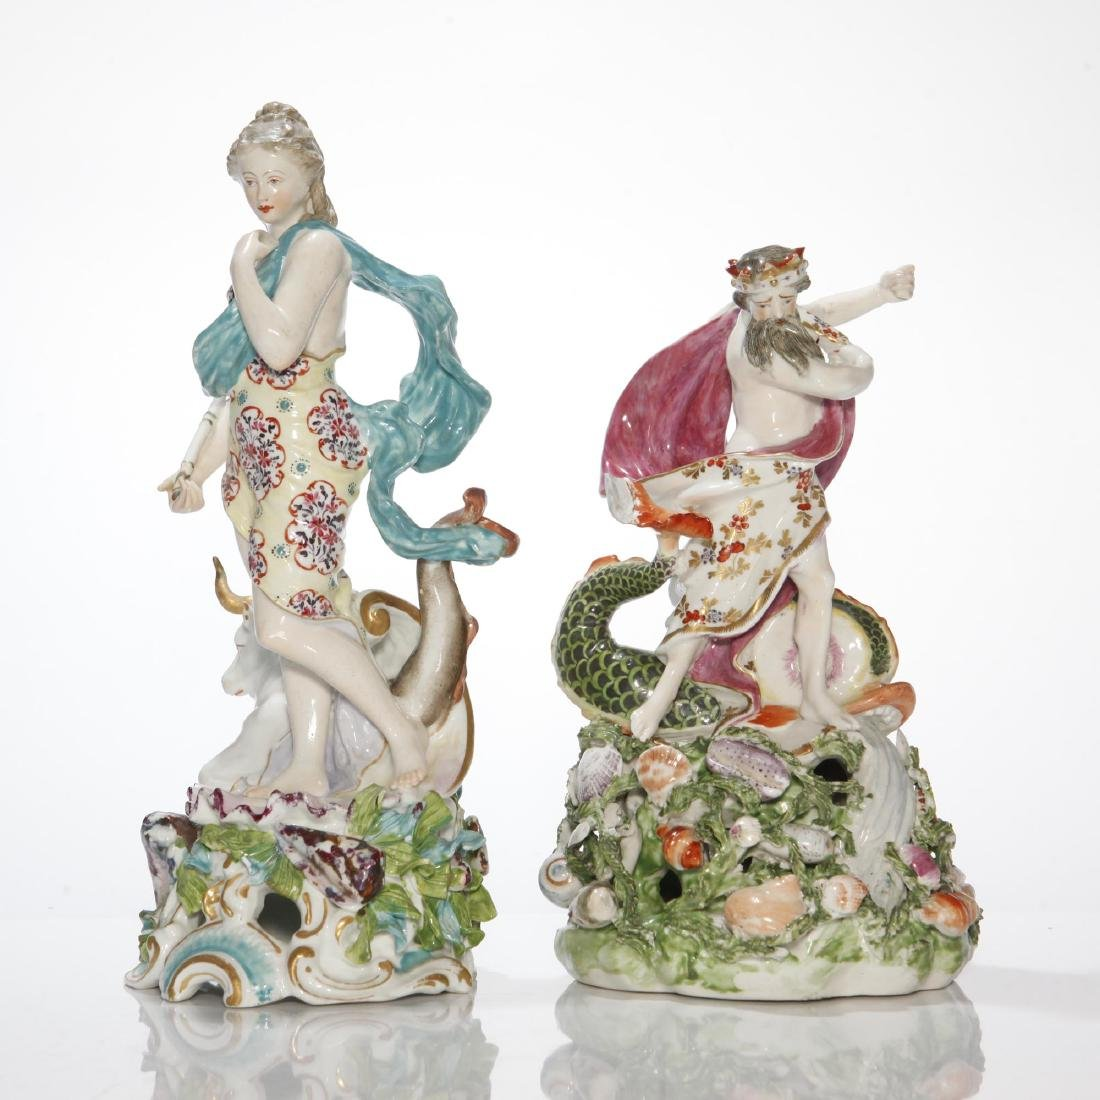 PAIR DERBY 18thC PORCELAIN GROUP NEPTUNE & EUROPA